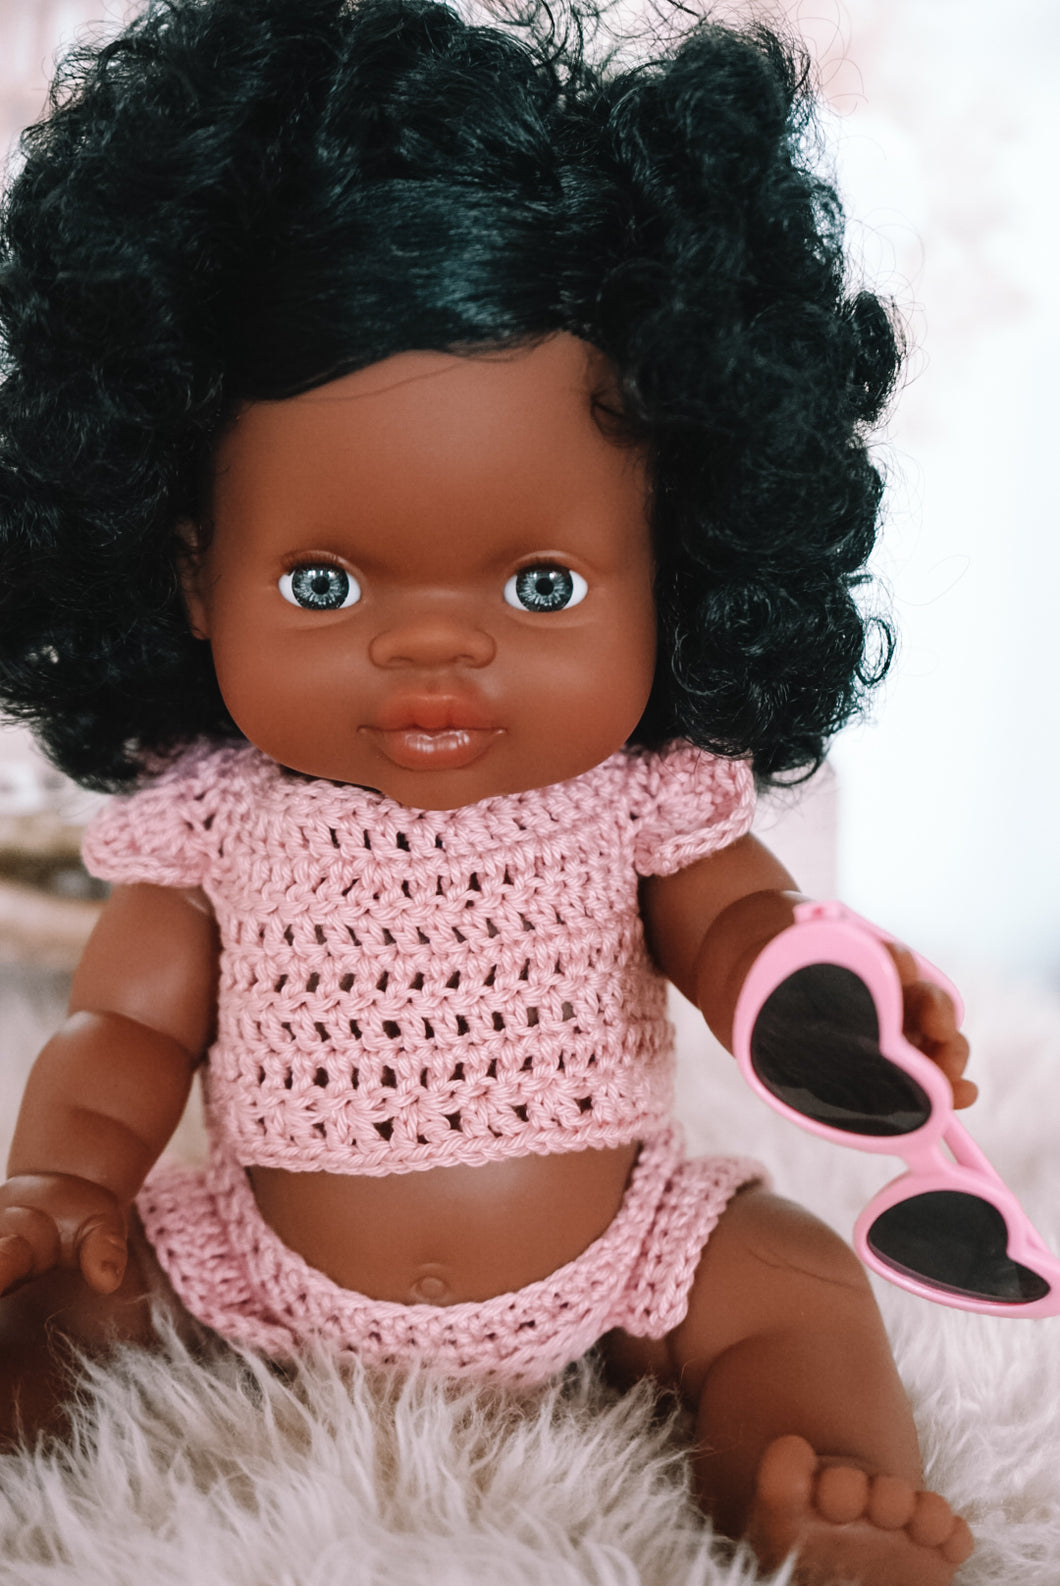 BABY DOLL GIFT SET - Paola Reina Marley or Jazmine Doll, two piece crochet doll clothes outfit with heart glasses.